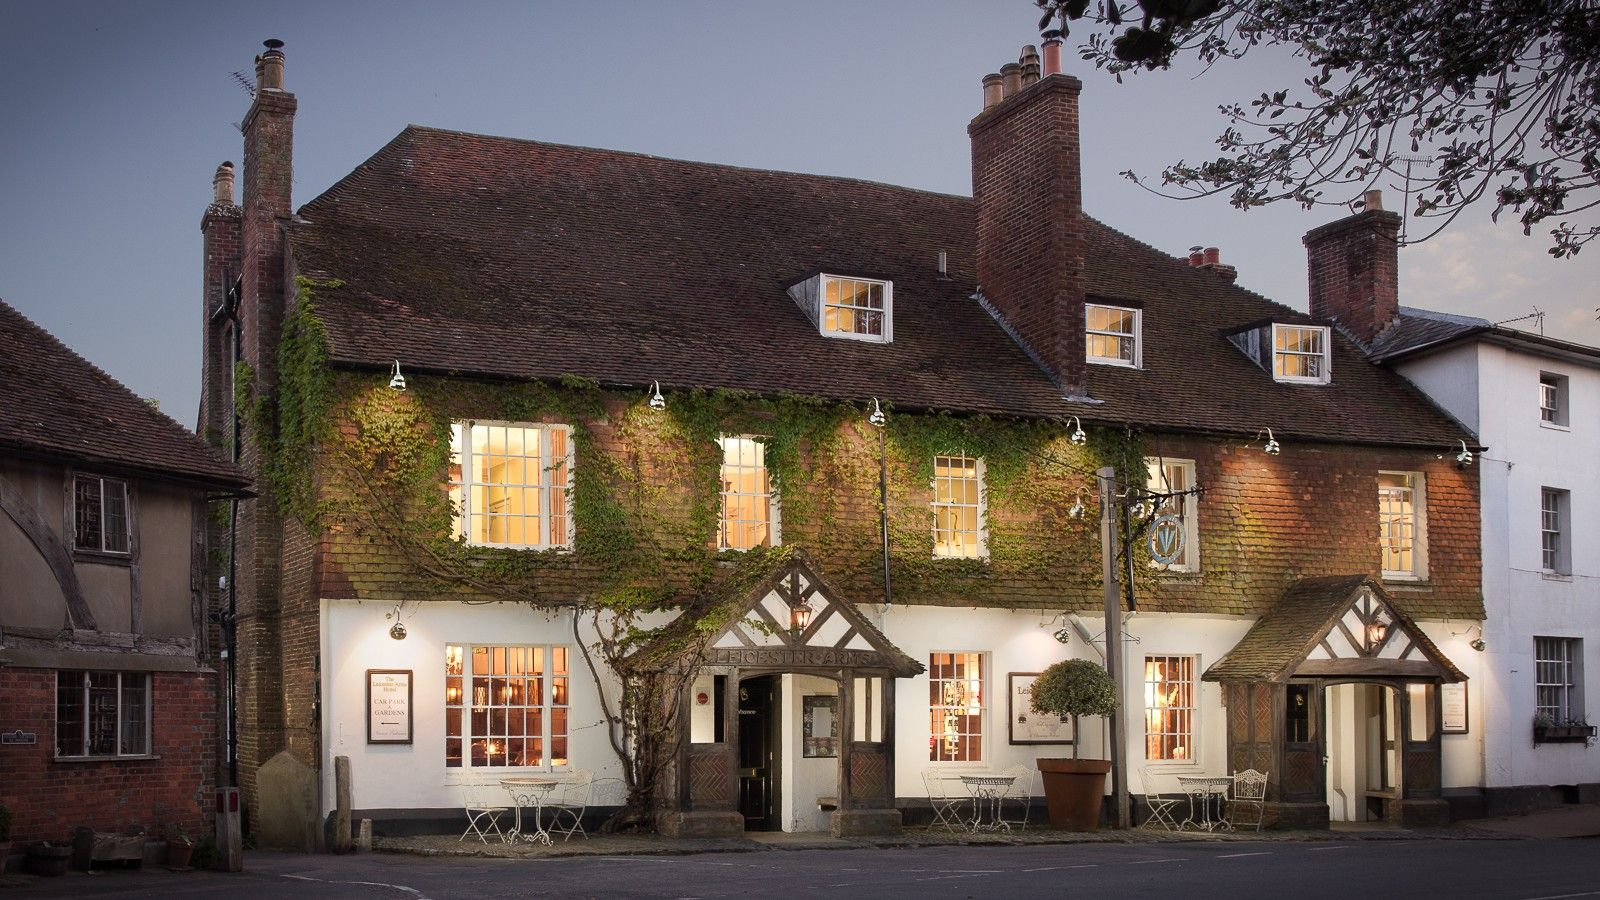 The Leicester Arms Hotel In Penshurst Kent Lovely Pub With A Gorgeous Garden And Great Food